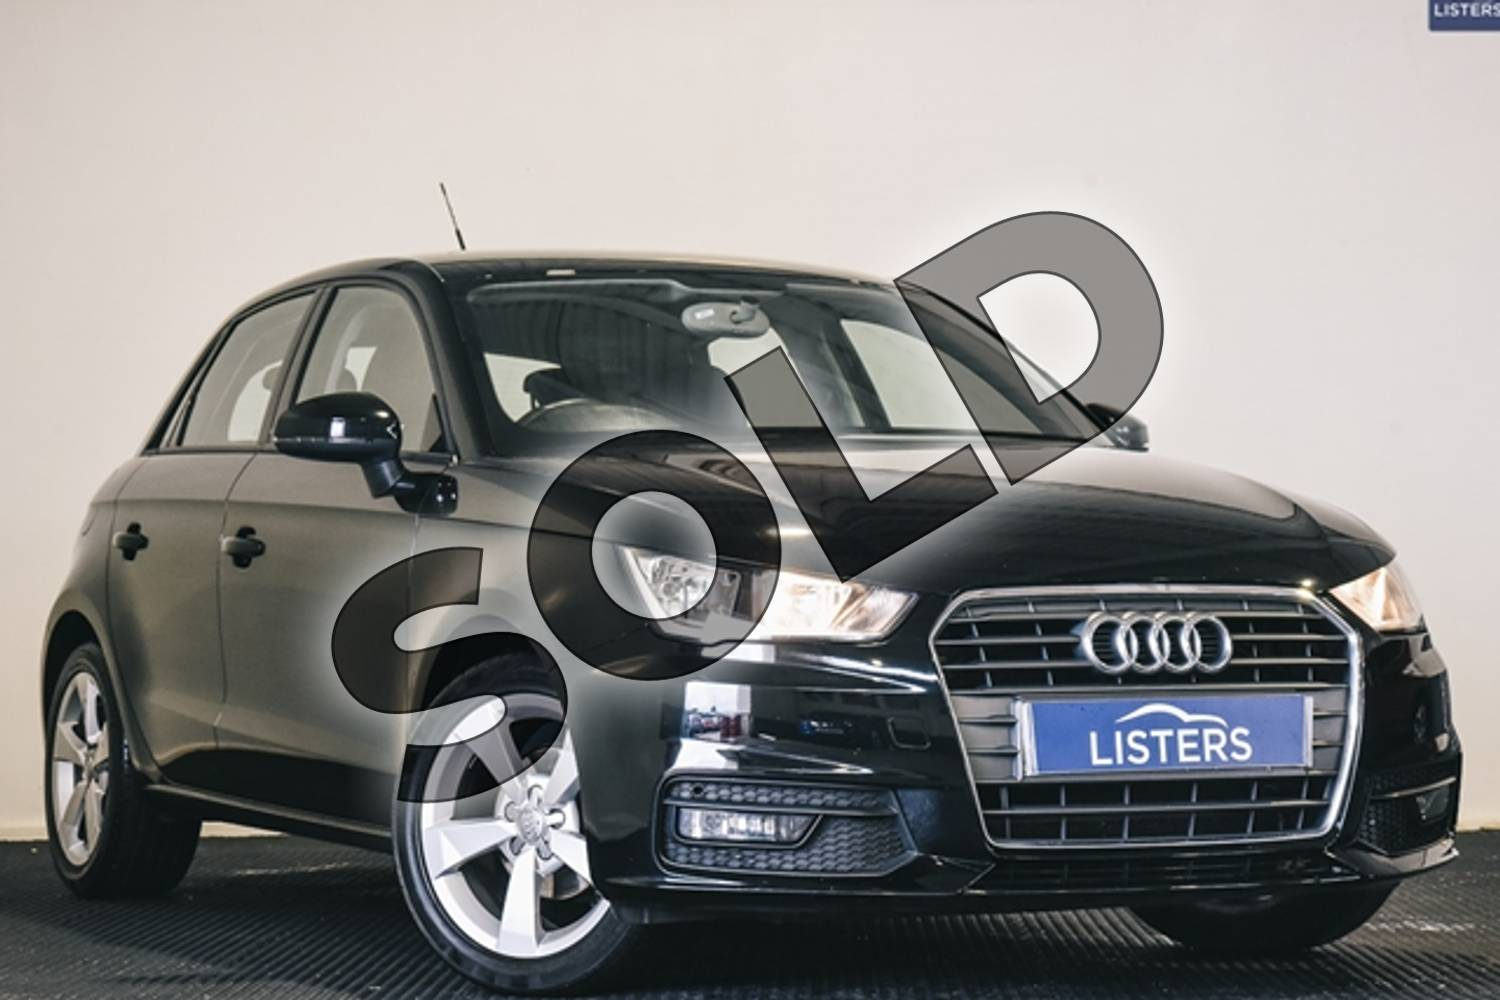 2016 Audi A1 Sportback 1.0 TFSI Sport 5dr in Solid - Brilliant black at Listers U Stratford-upon-Avon